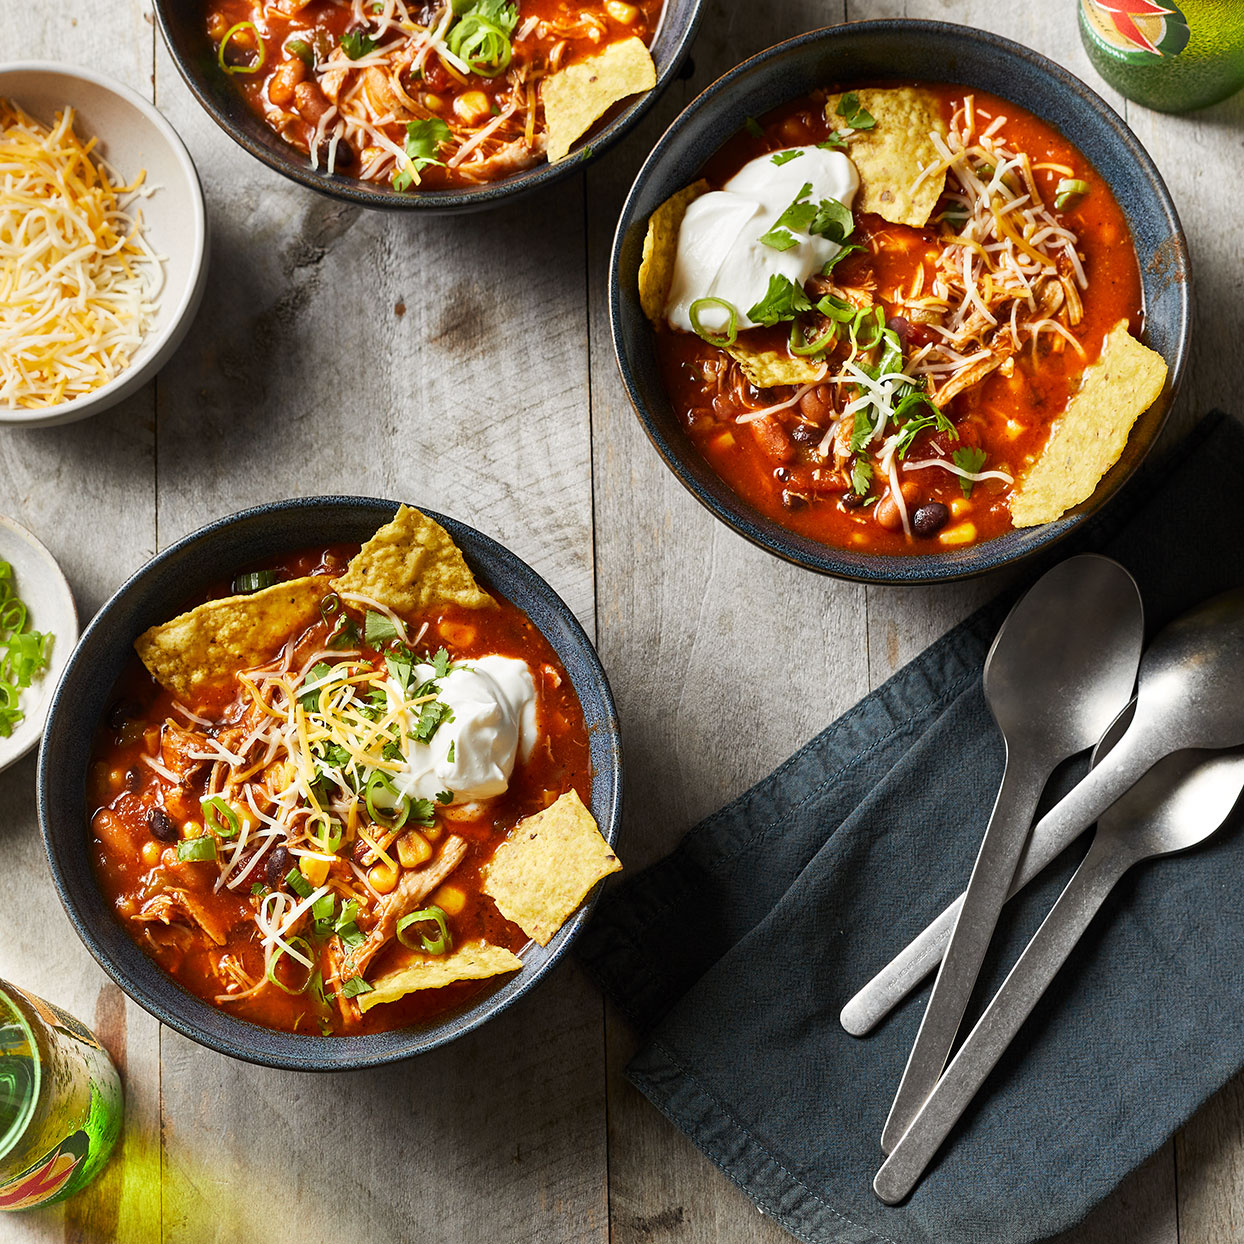 If you love tacos, this Instant Pot chicken taco soup won't disappoint. Silky strained tomatoes add body, while shredded chicken, beans and spices add those rich and spicy familiar flavors. And don't forget the toppings! Melted cheese, creamy sour cream and crushed tortilla chips round out this new family favorite. Source: EatingWell.com, July 2020